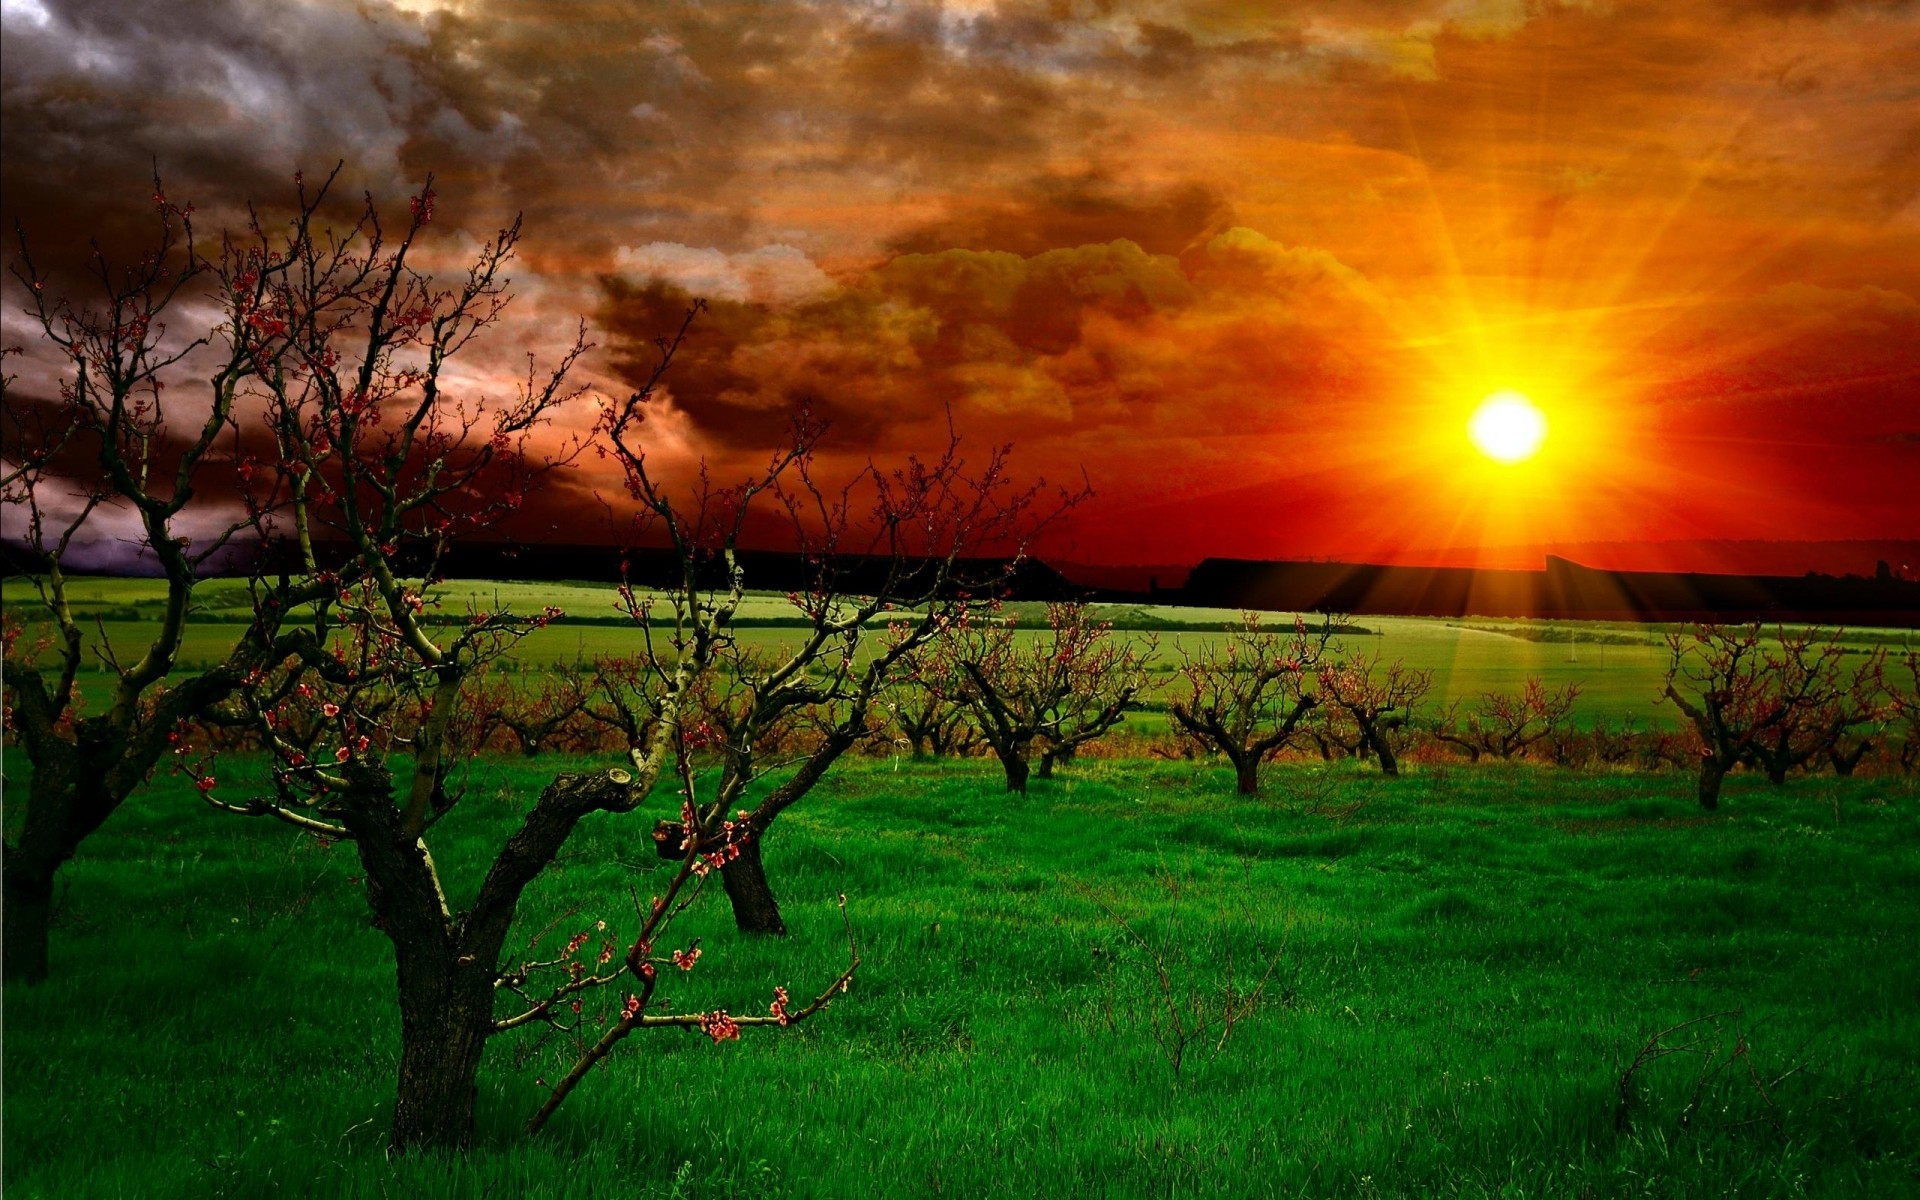 landscapes dawn sunset sun landscape nature grass field tree rural evening fair weather countryside light outdoors farm agriculture hayfield bright hdr garden